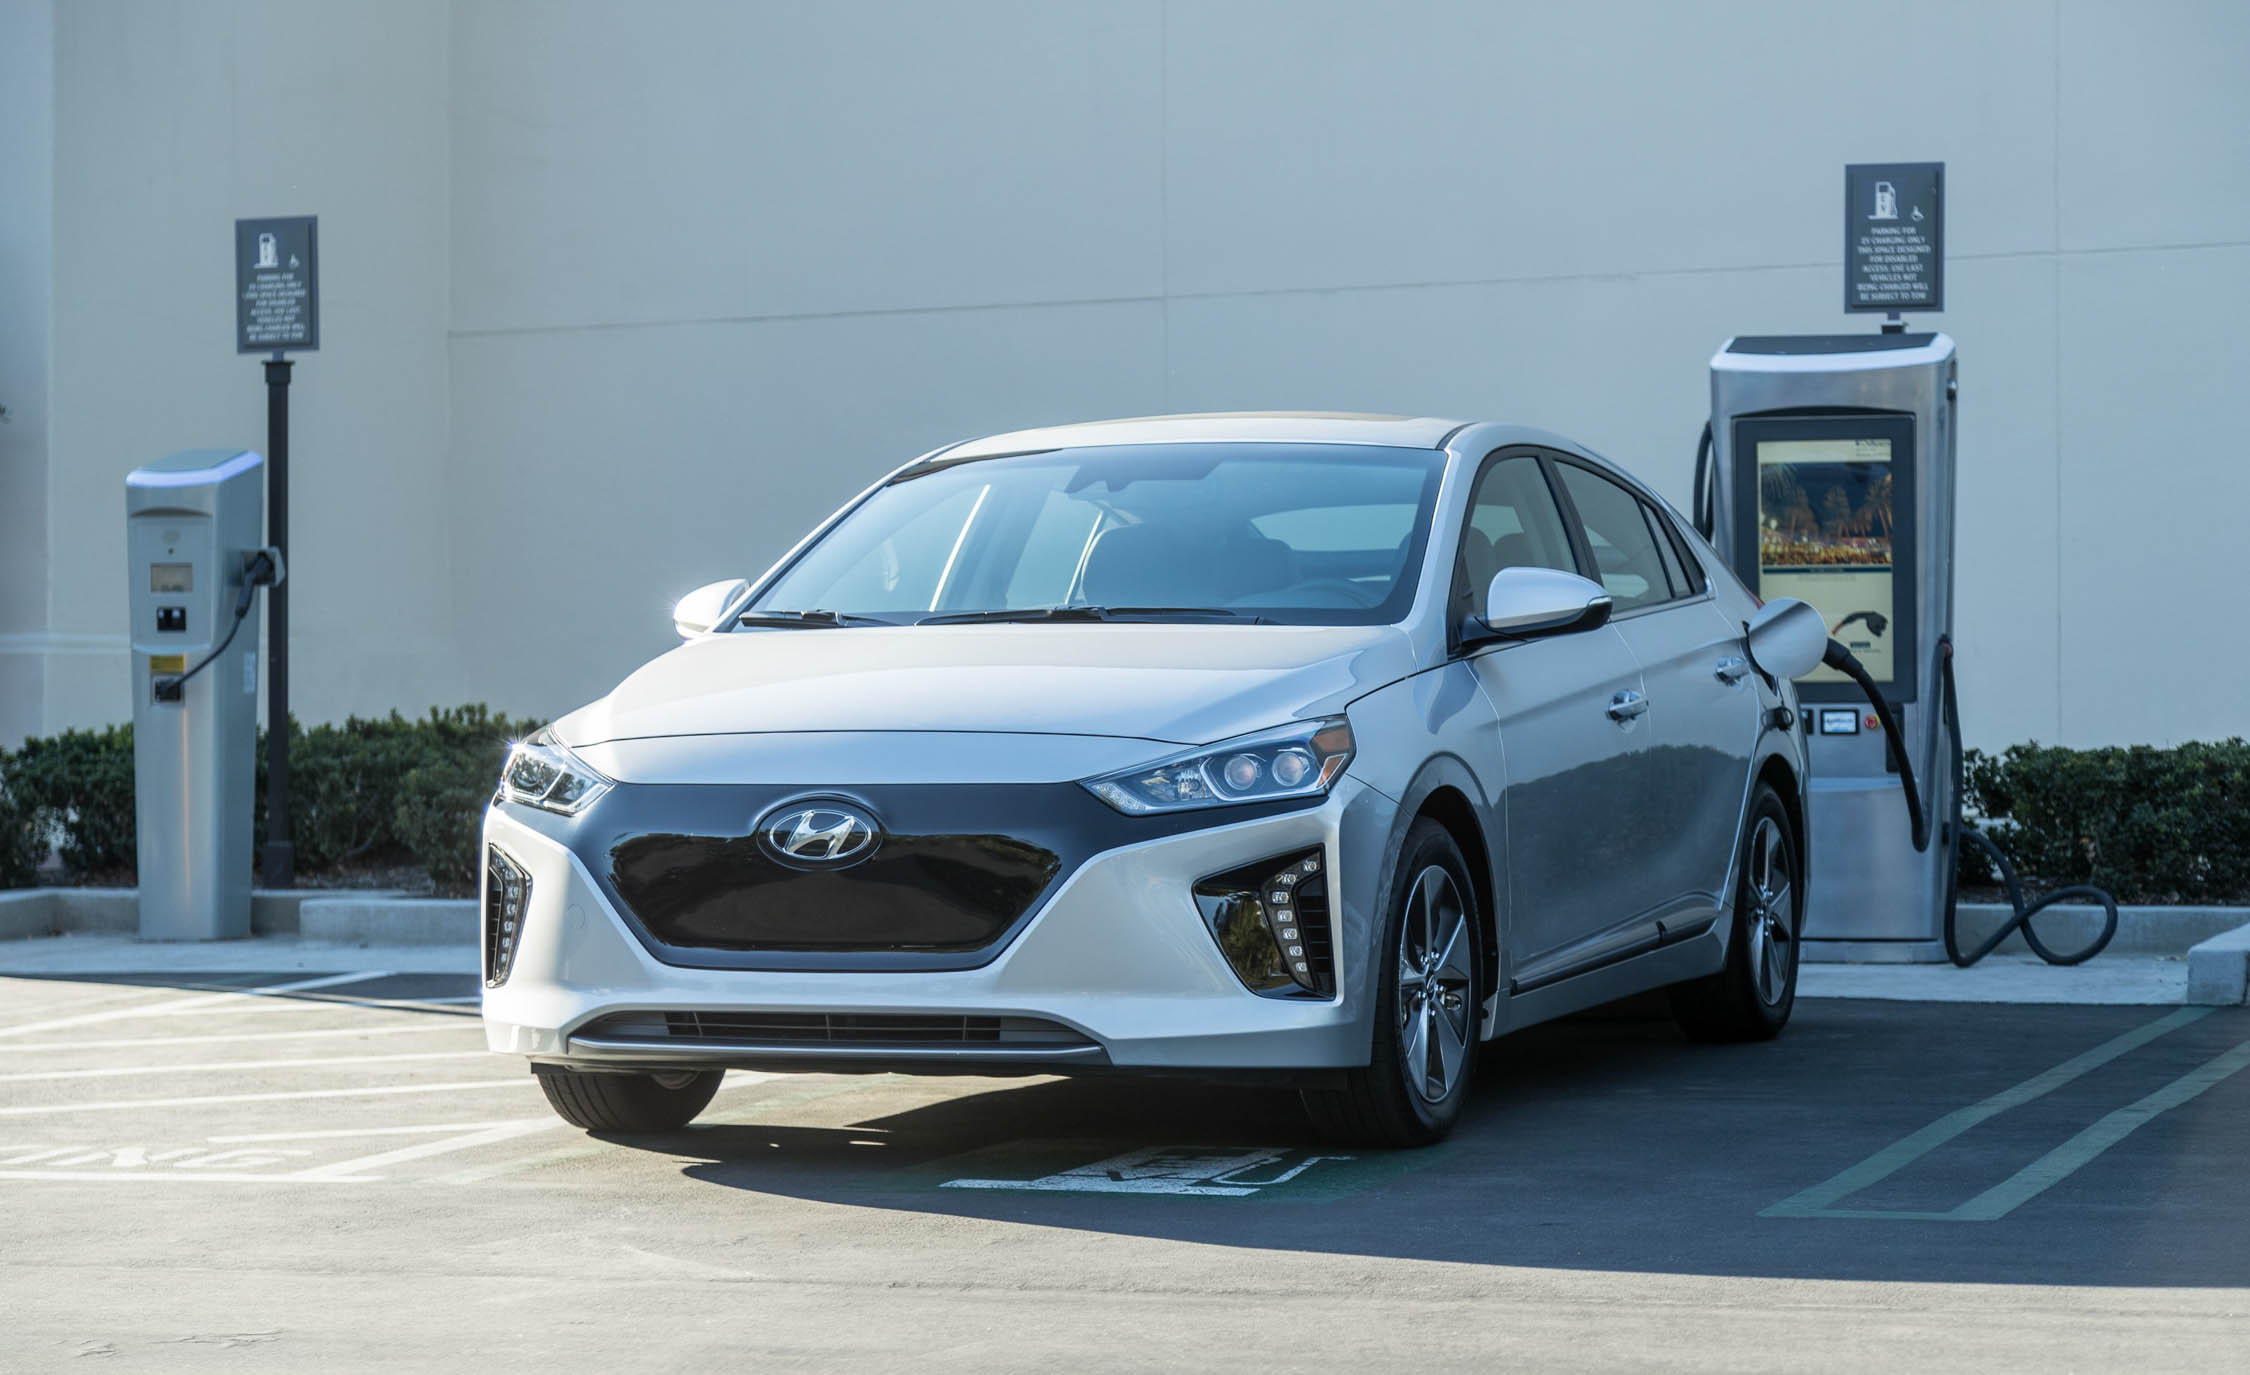 2017 Hyundai Ioniq Electric Exterior Front Profile (Photo 4 of 67)